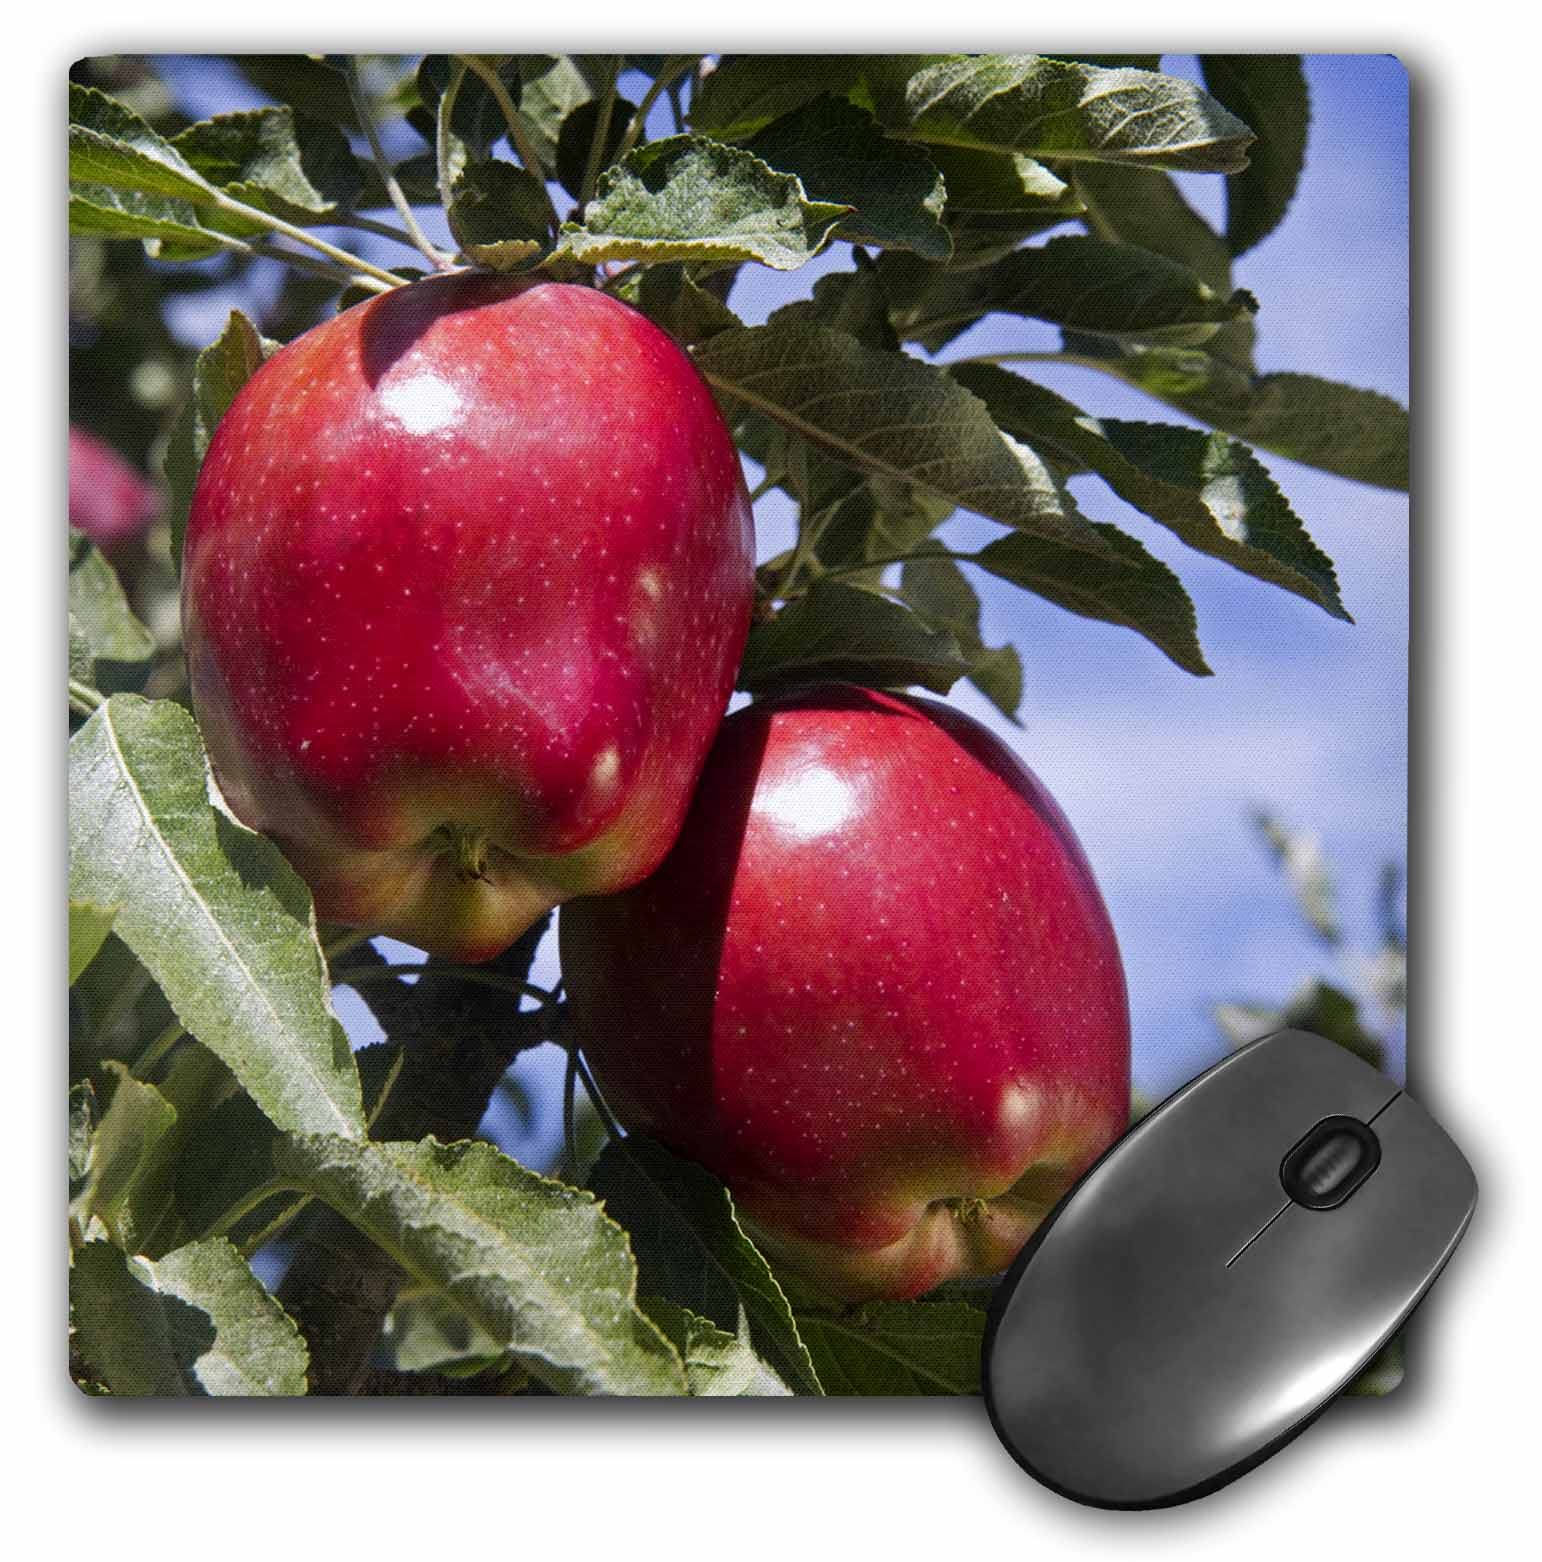 3dRose Red Delicious apples, agriculture, Idaho - US13 DFR1143 - David R. Frazier, Mouse Pad, 8 by 8 inches